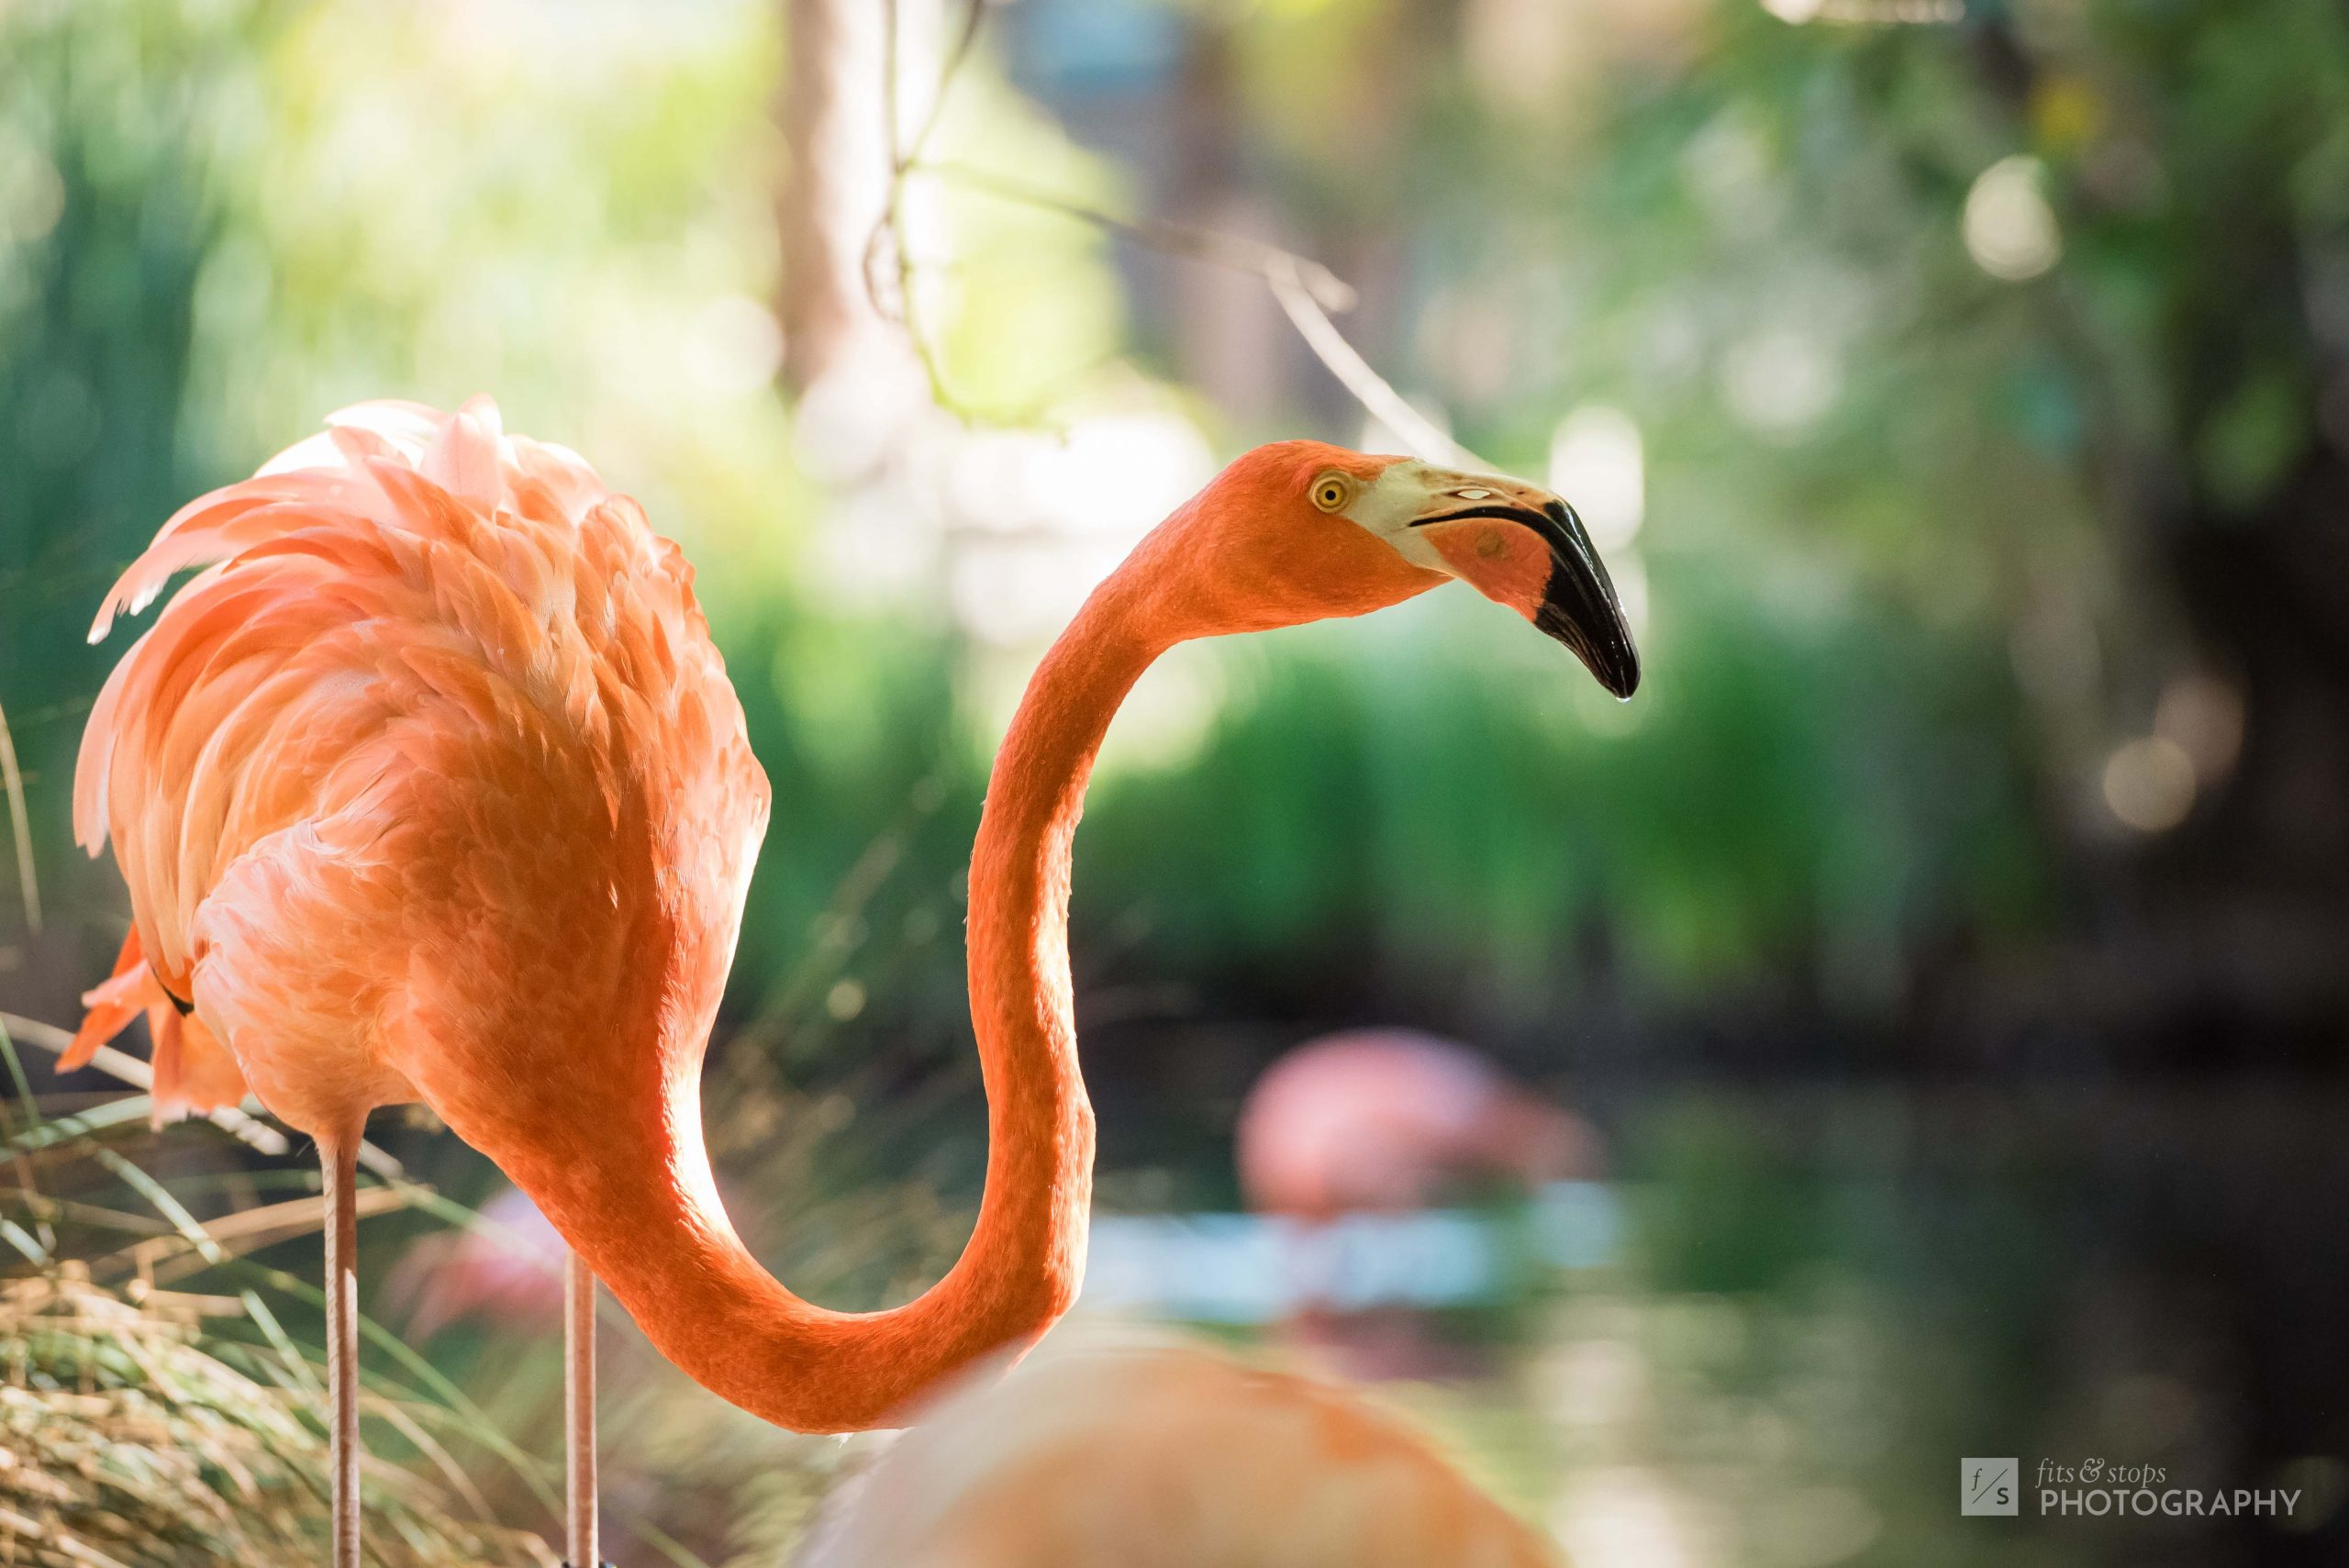 A photo of a flamingo with an oxbow neck peers out over his home in the nearby pond at the Sacramento Zoo.